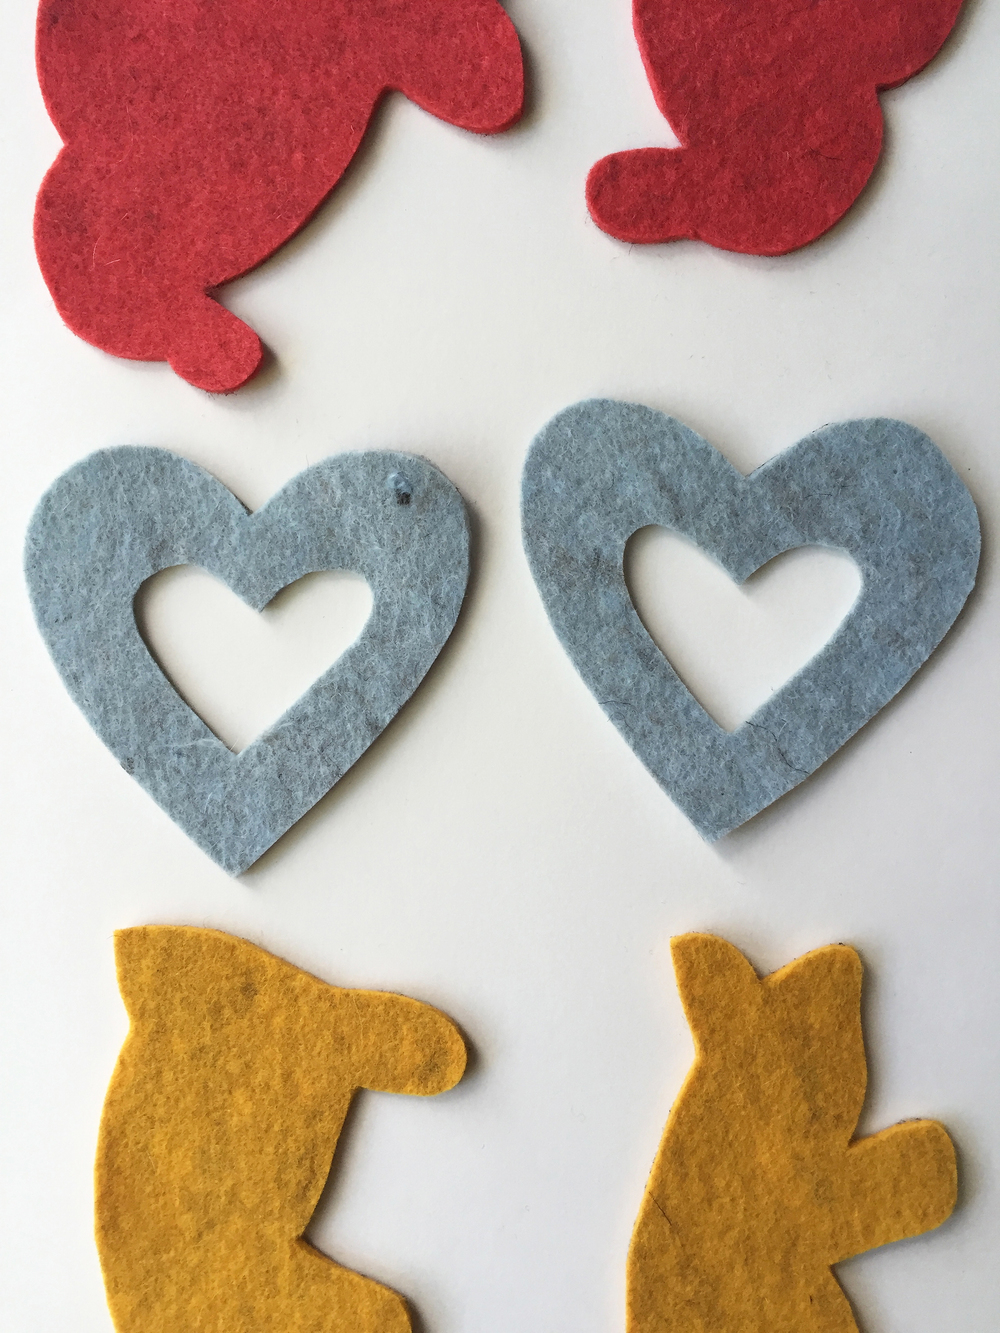 DIY Spatterware-Inspired Felt Ornaments by Rebecca Pitts - 08.jpeg